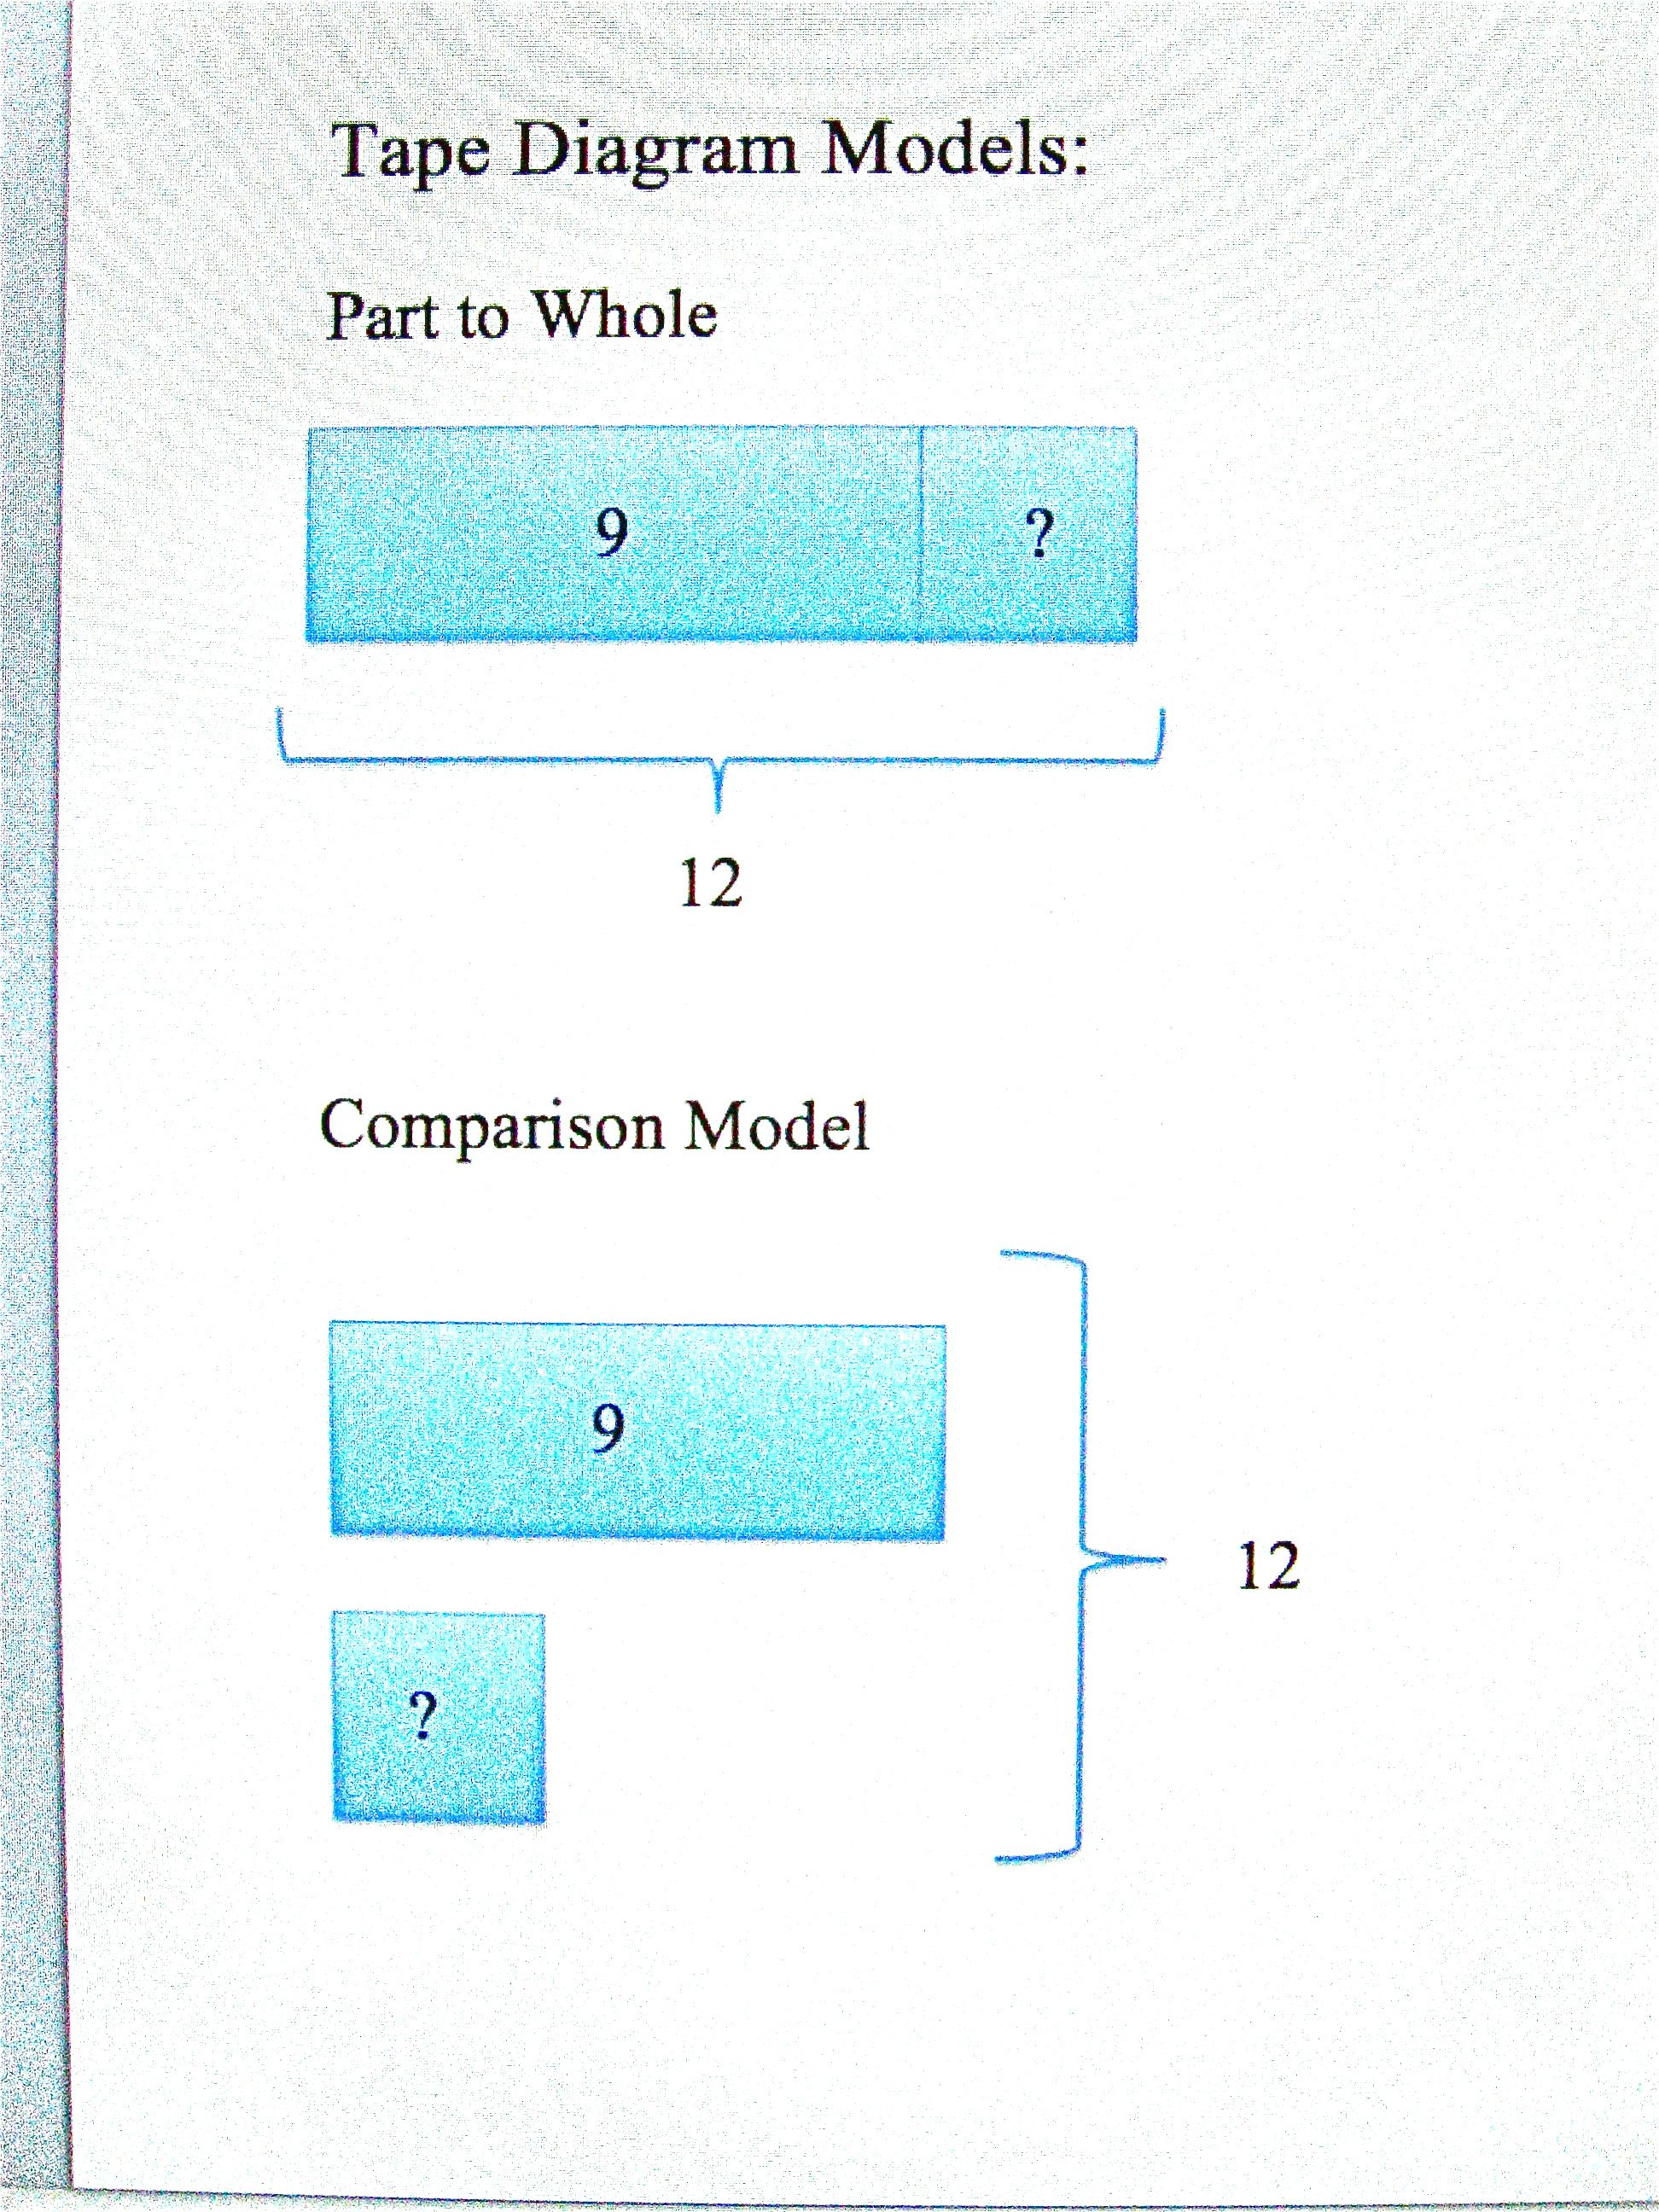 small resolution of tape diagram models part to whole comparison models